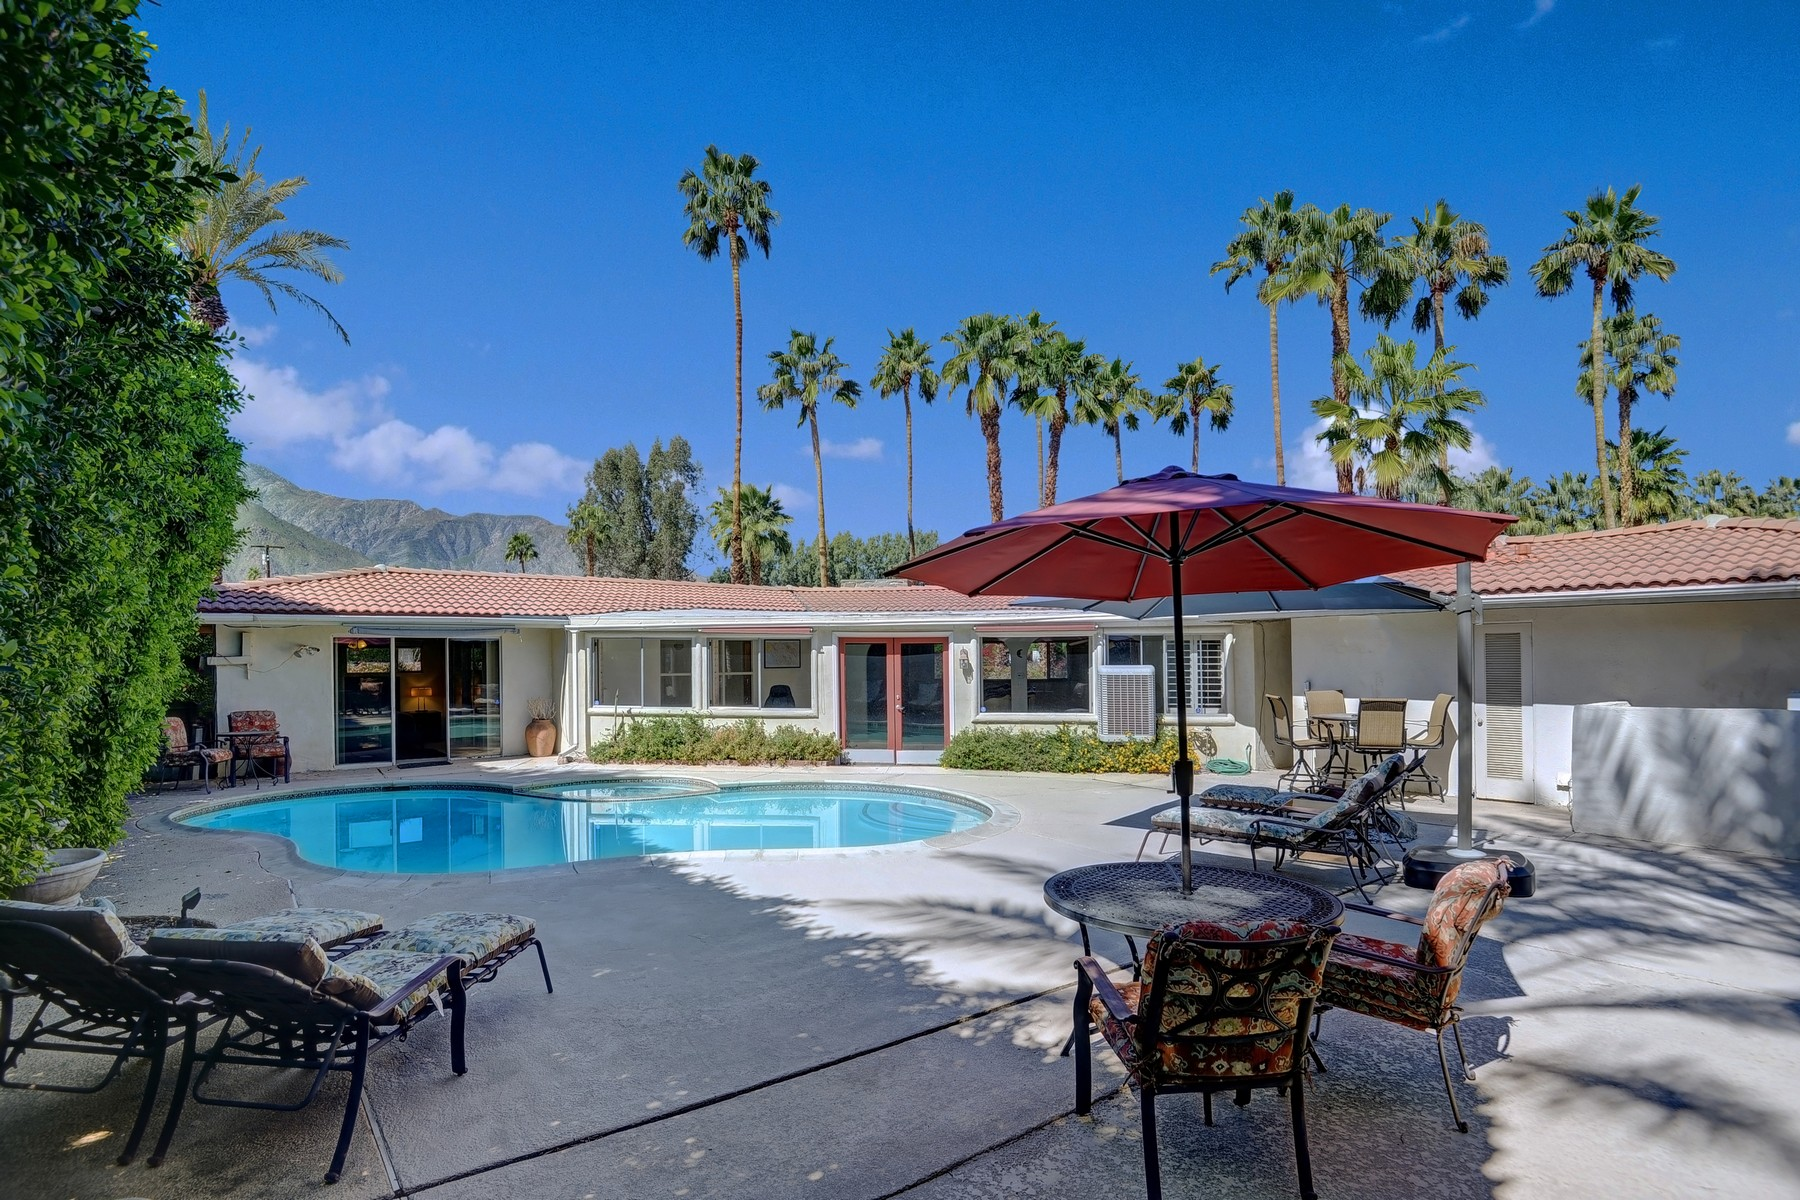 Single Family Home for Sale at 1281 Linda Vista 1281 Linda Vista Rd Palm Springs, California, 92262 United States